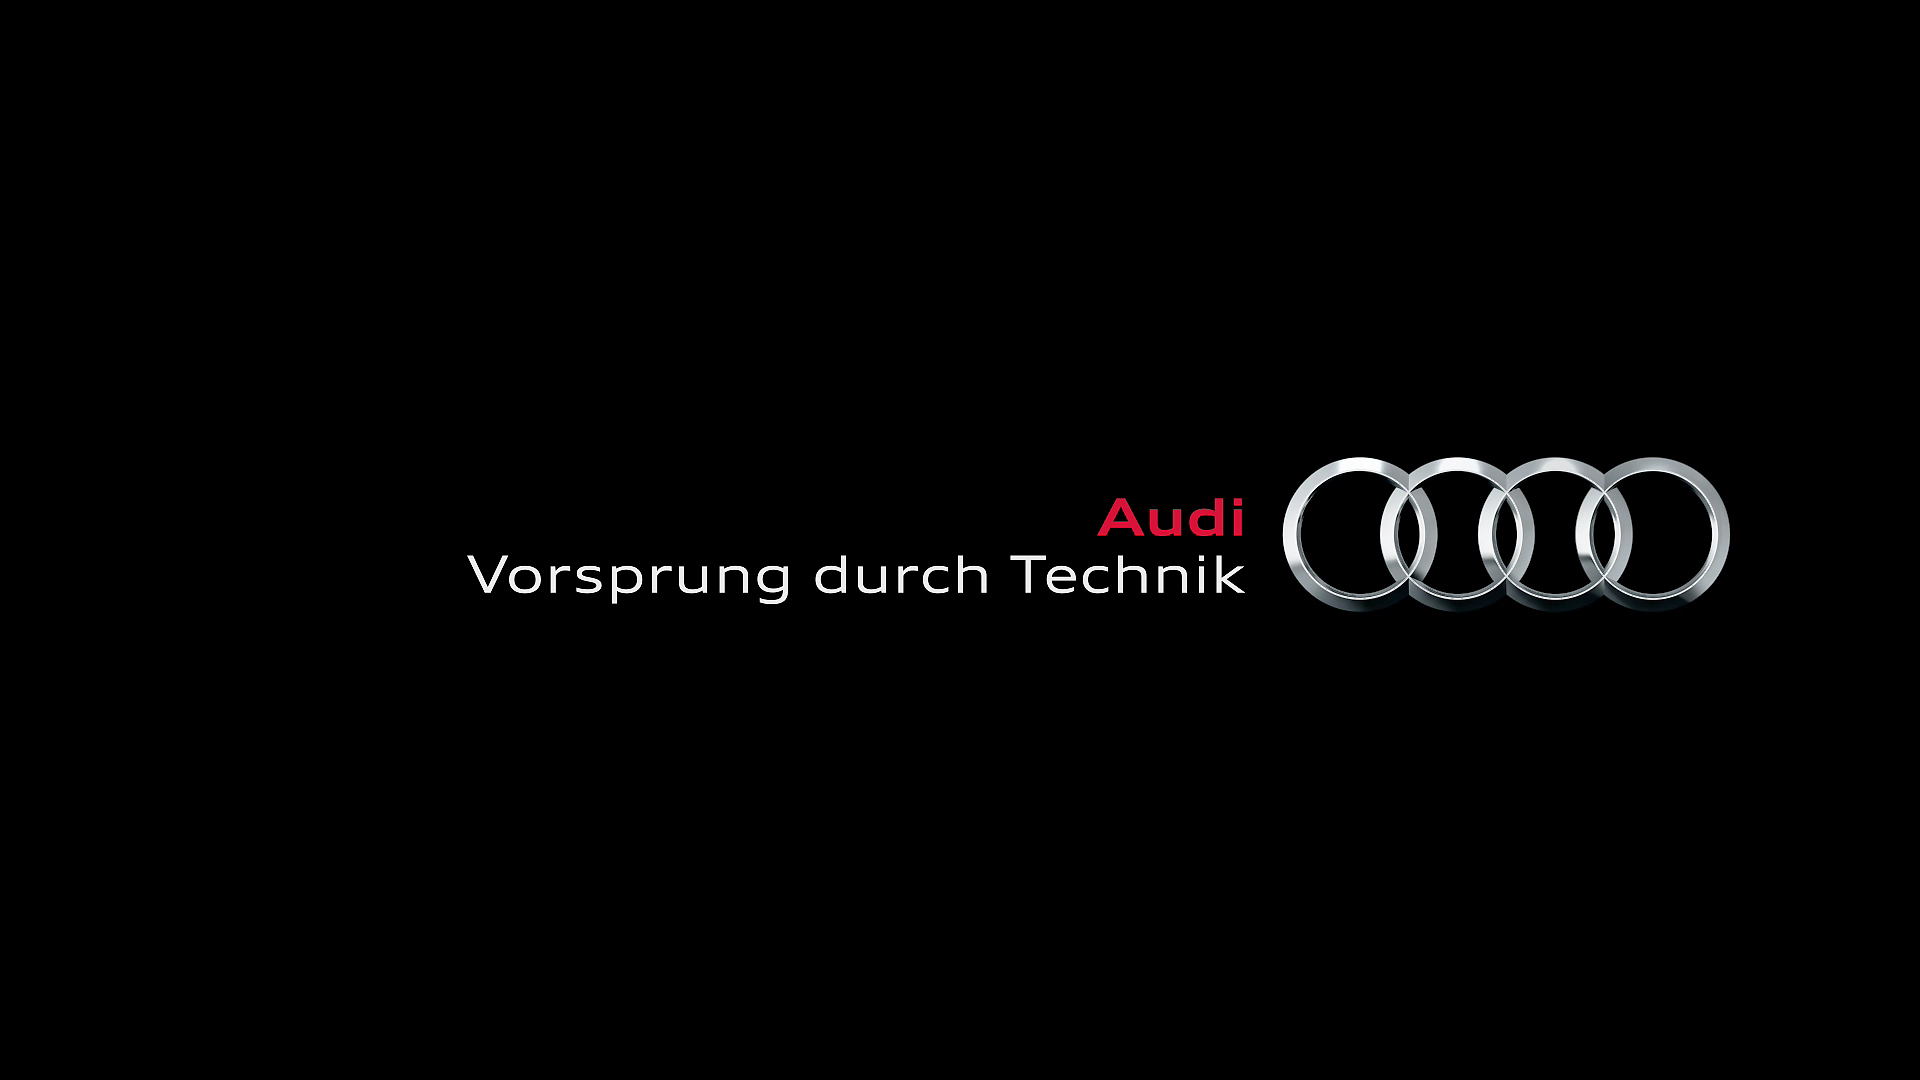 Audi Logo Wallpaper Free For Desktop Wallpaper 1920 X 1080 Px 623 08